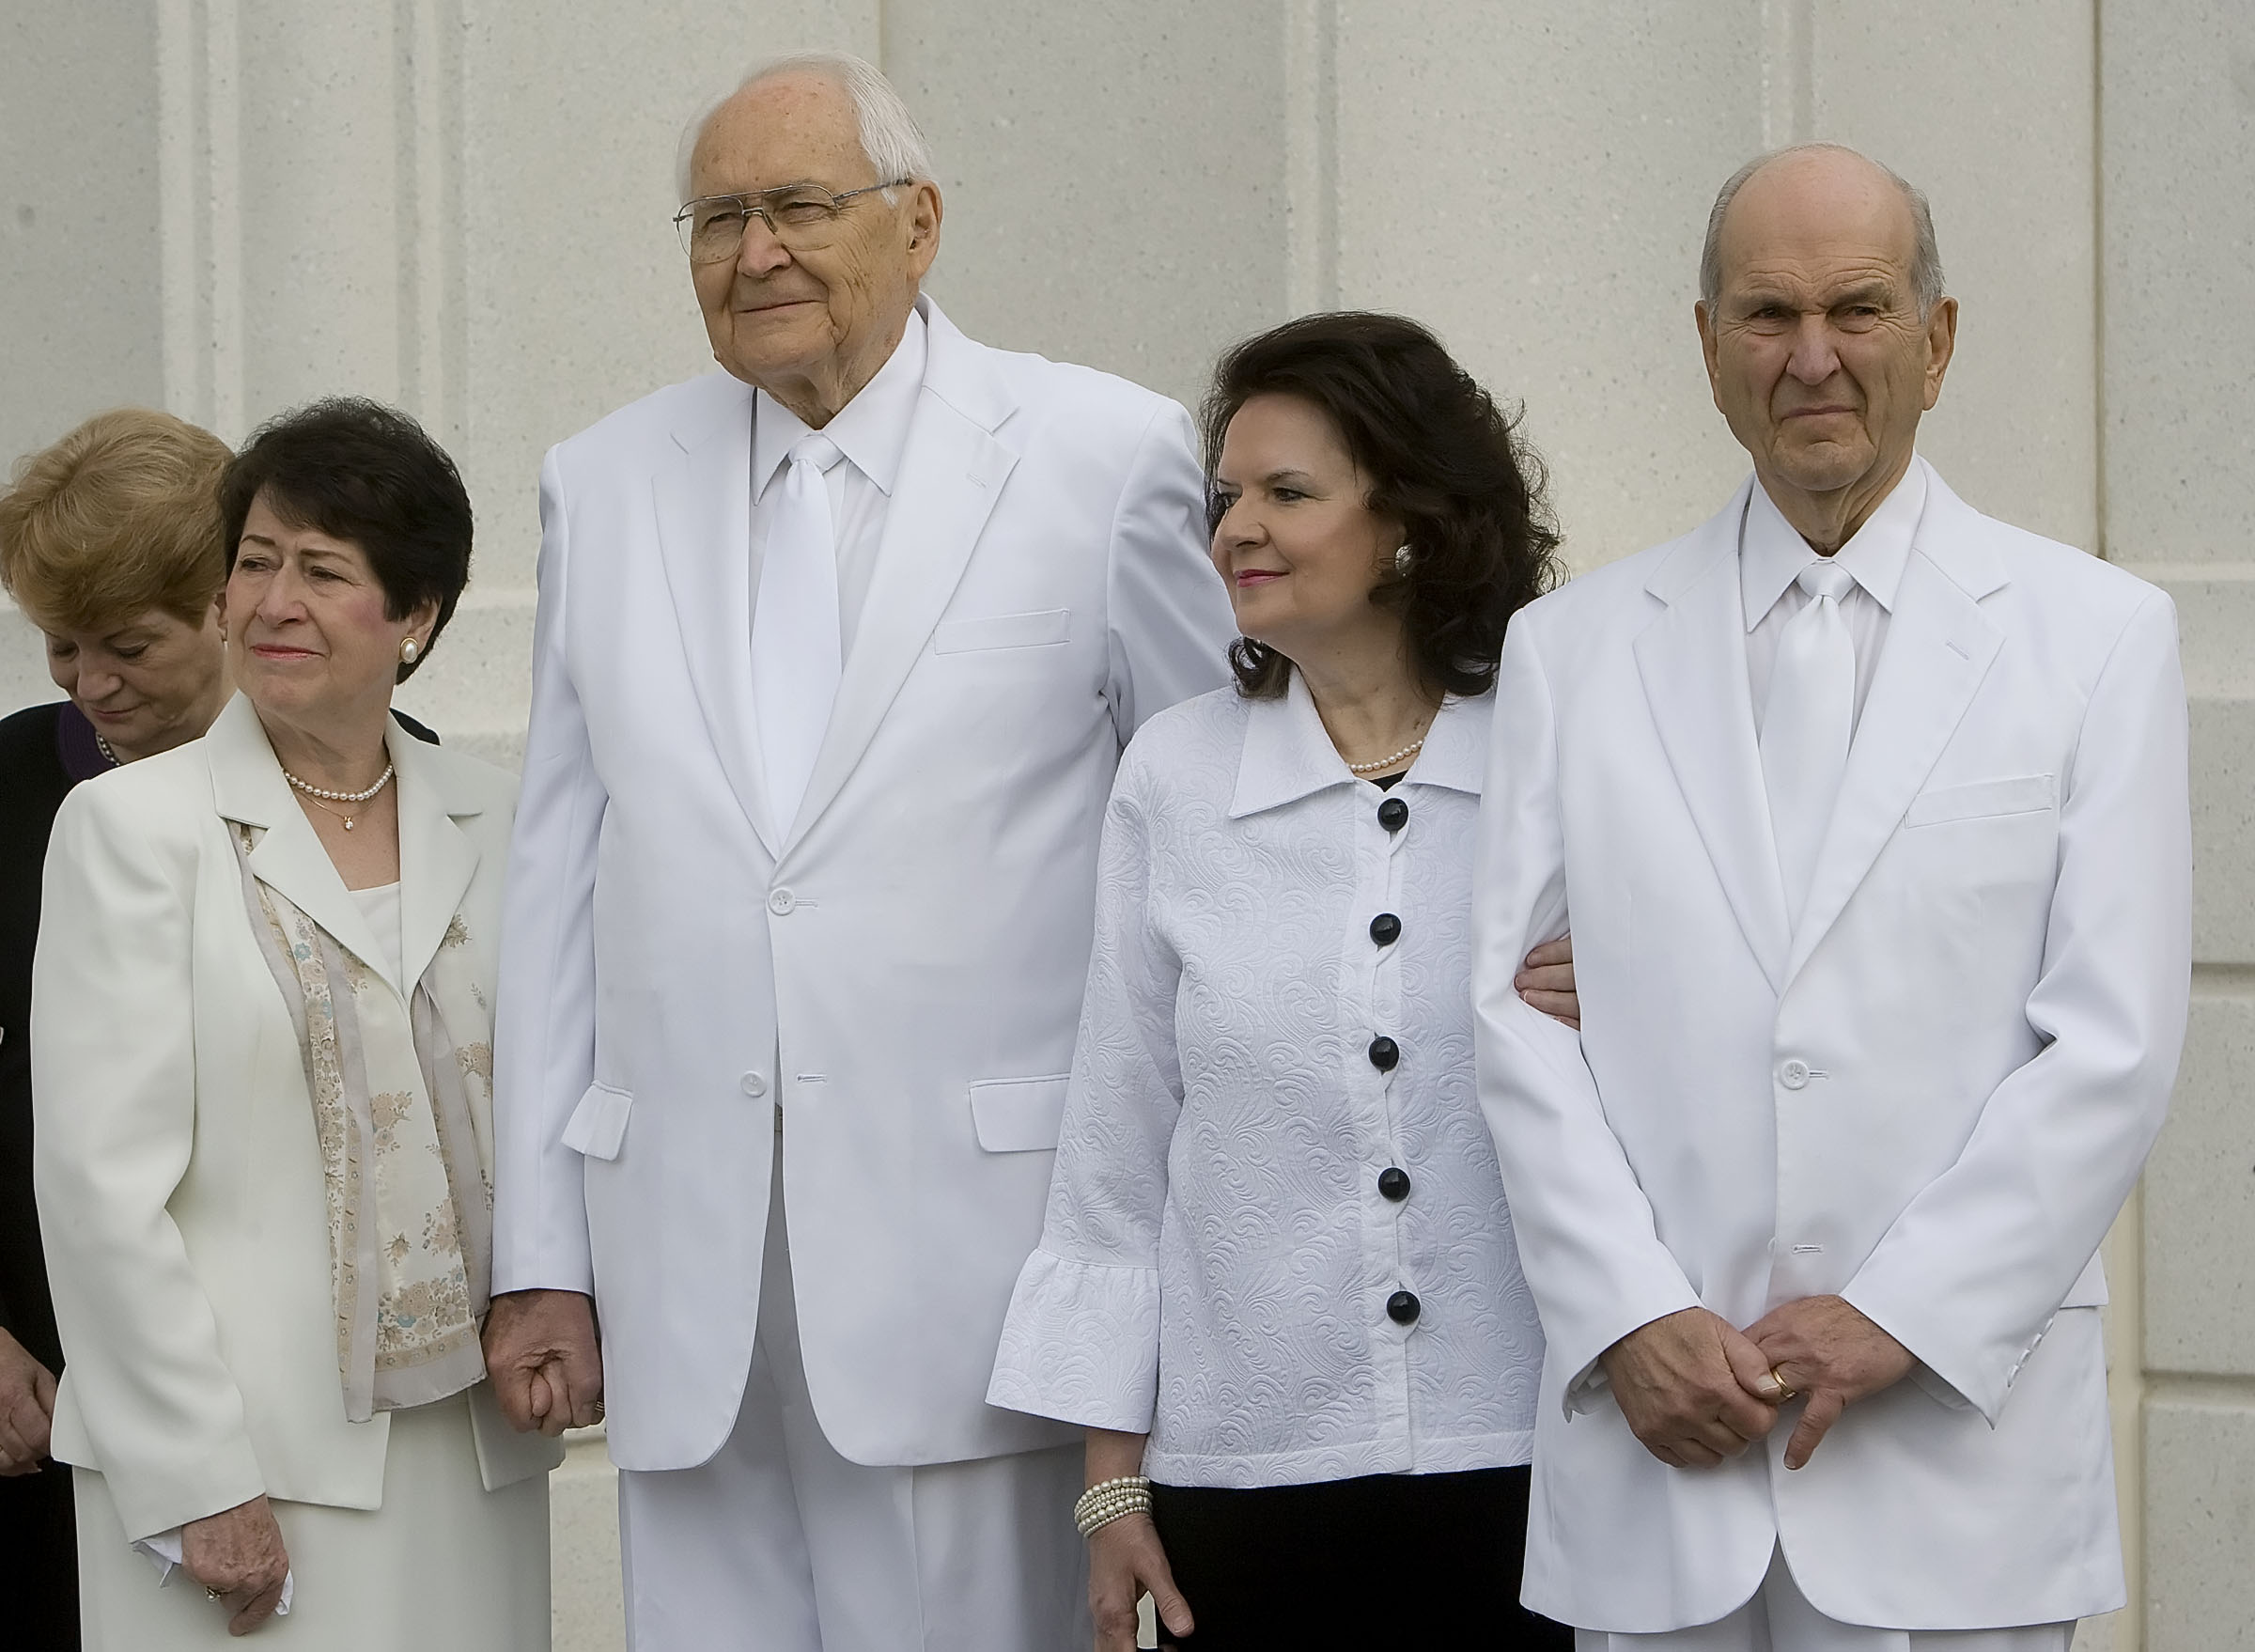 Elder L. Tom Perry of the Quorum of the Twelve Apostles and wife Sister Barbara Perry, left, stand with Elder Russell M. Nelson of the Quorum of the Twelve Apostles and his wife, Wendy Watson Nelson for the cornerstone ceremony. About 200 took part in the ceremony at the Brigham City Temple prior to the dedication Sunday, Sept. 23, 2012.